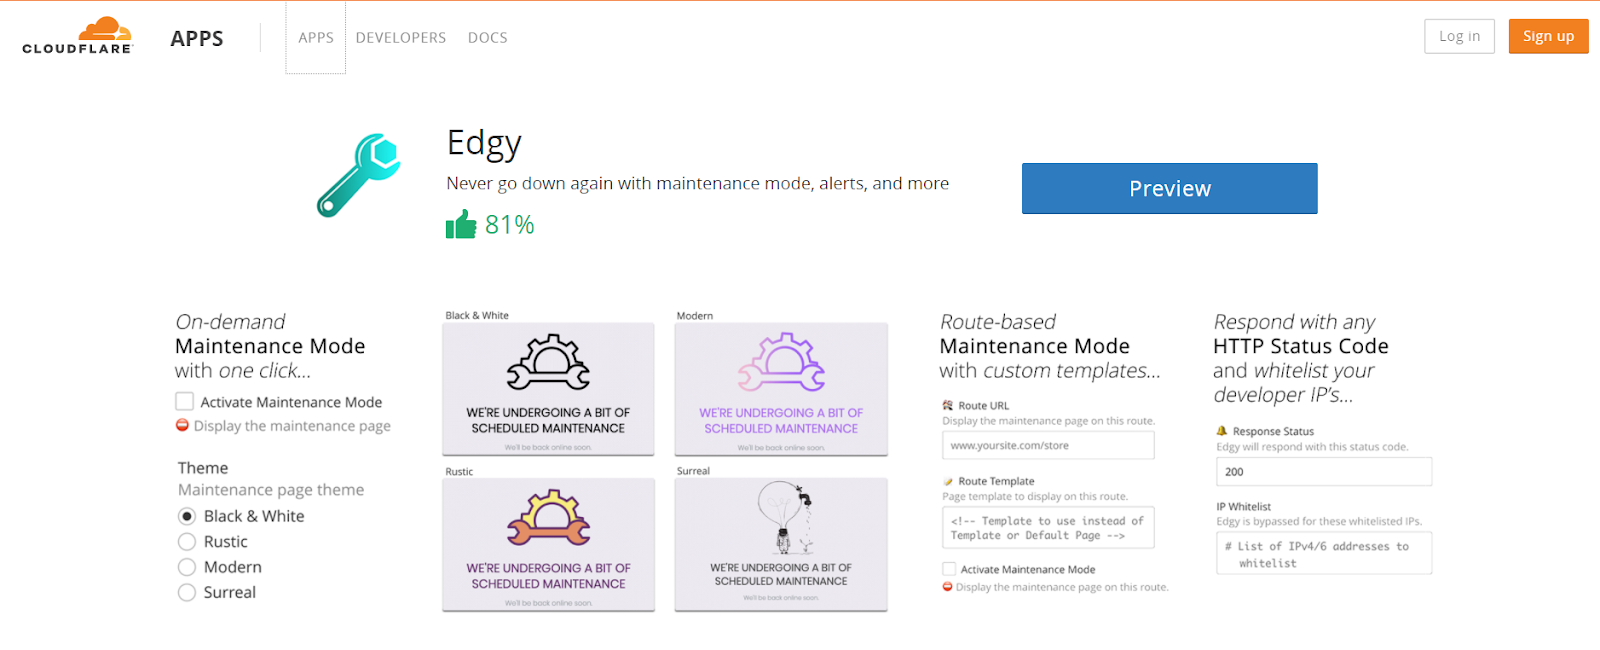 Cloudflare Edgy App For Maintenance Purpose